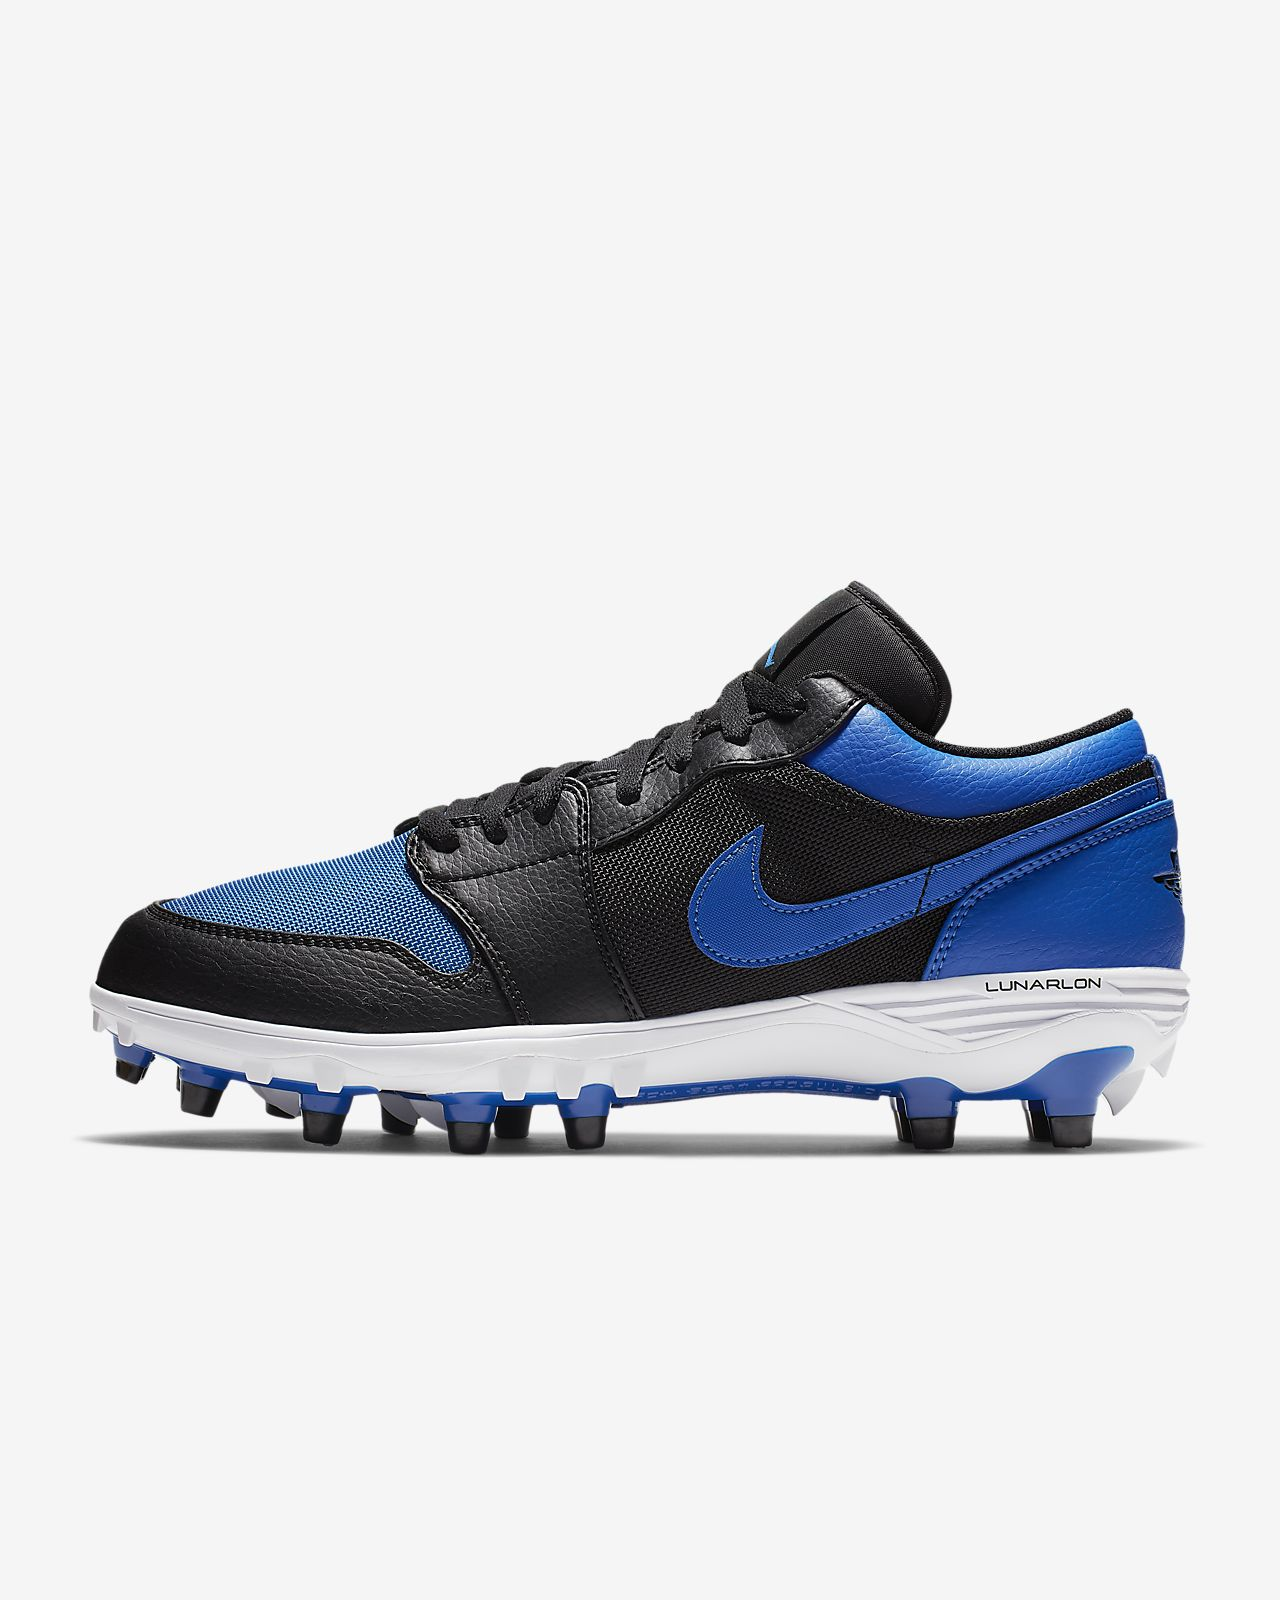 Jordan 1 TD Low Men's Football Cleat